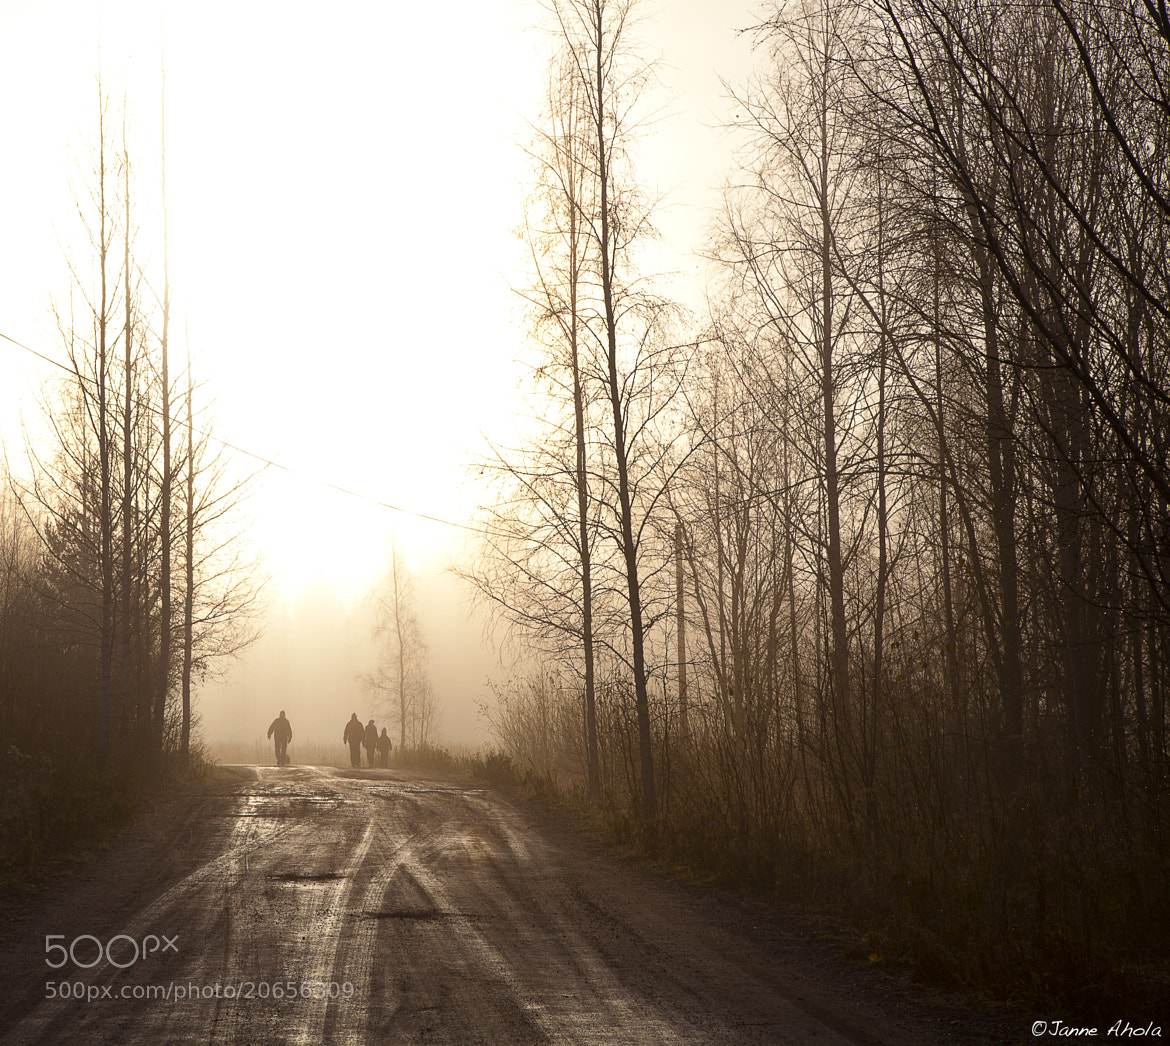 Photograph Family walk (version 2) by Jne Valokuvaus / Janne Ahola on 500px